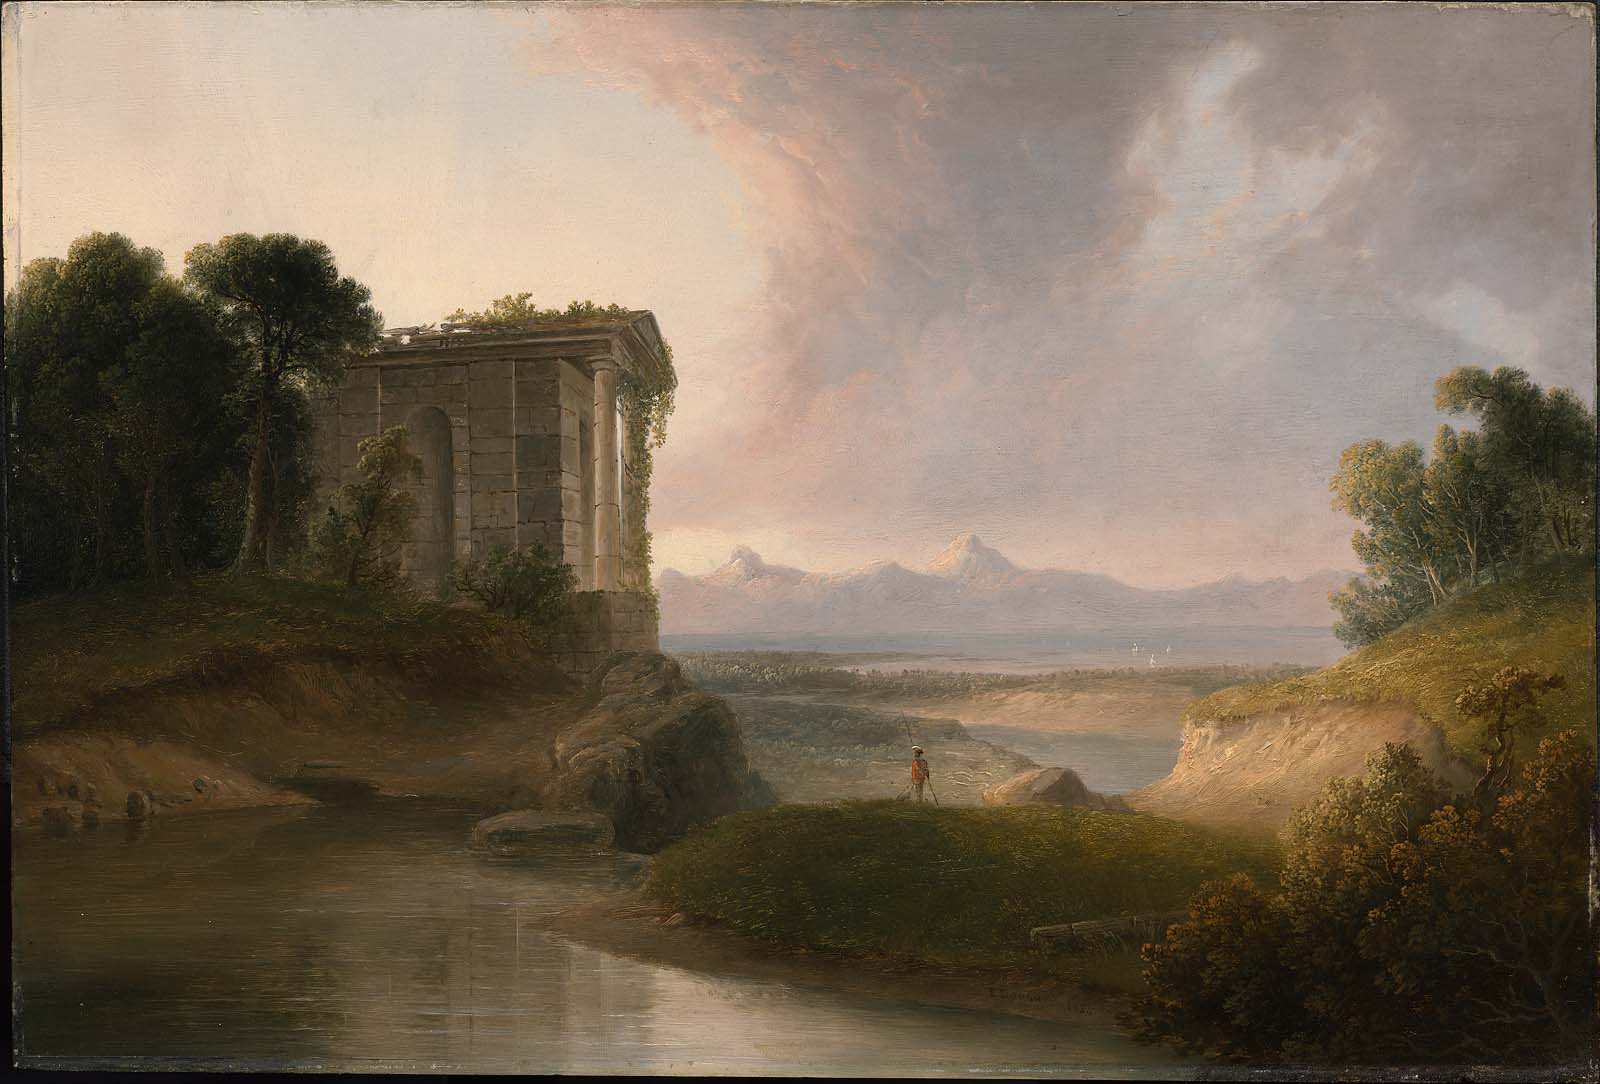 Romantic Landscape with a Temple, by Thomas Doughty,